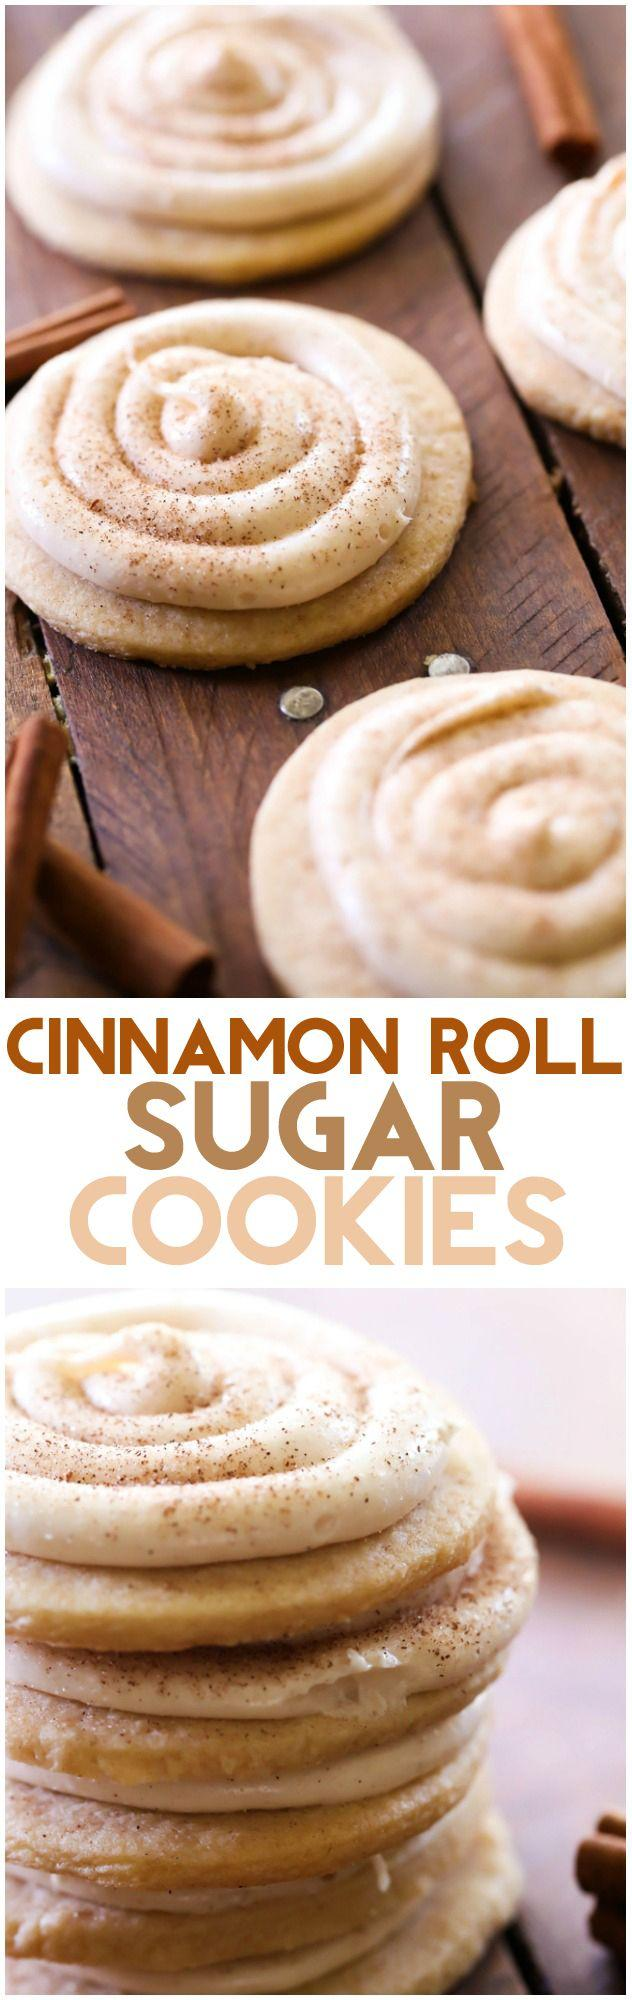 cinnamon roll sugar cookies i love cinnamon rolls they are one of my ...